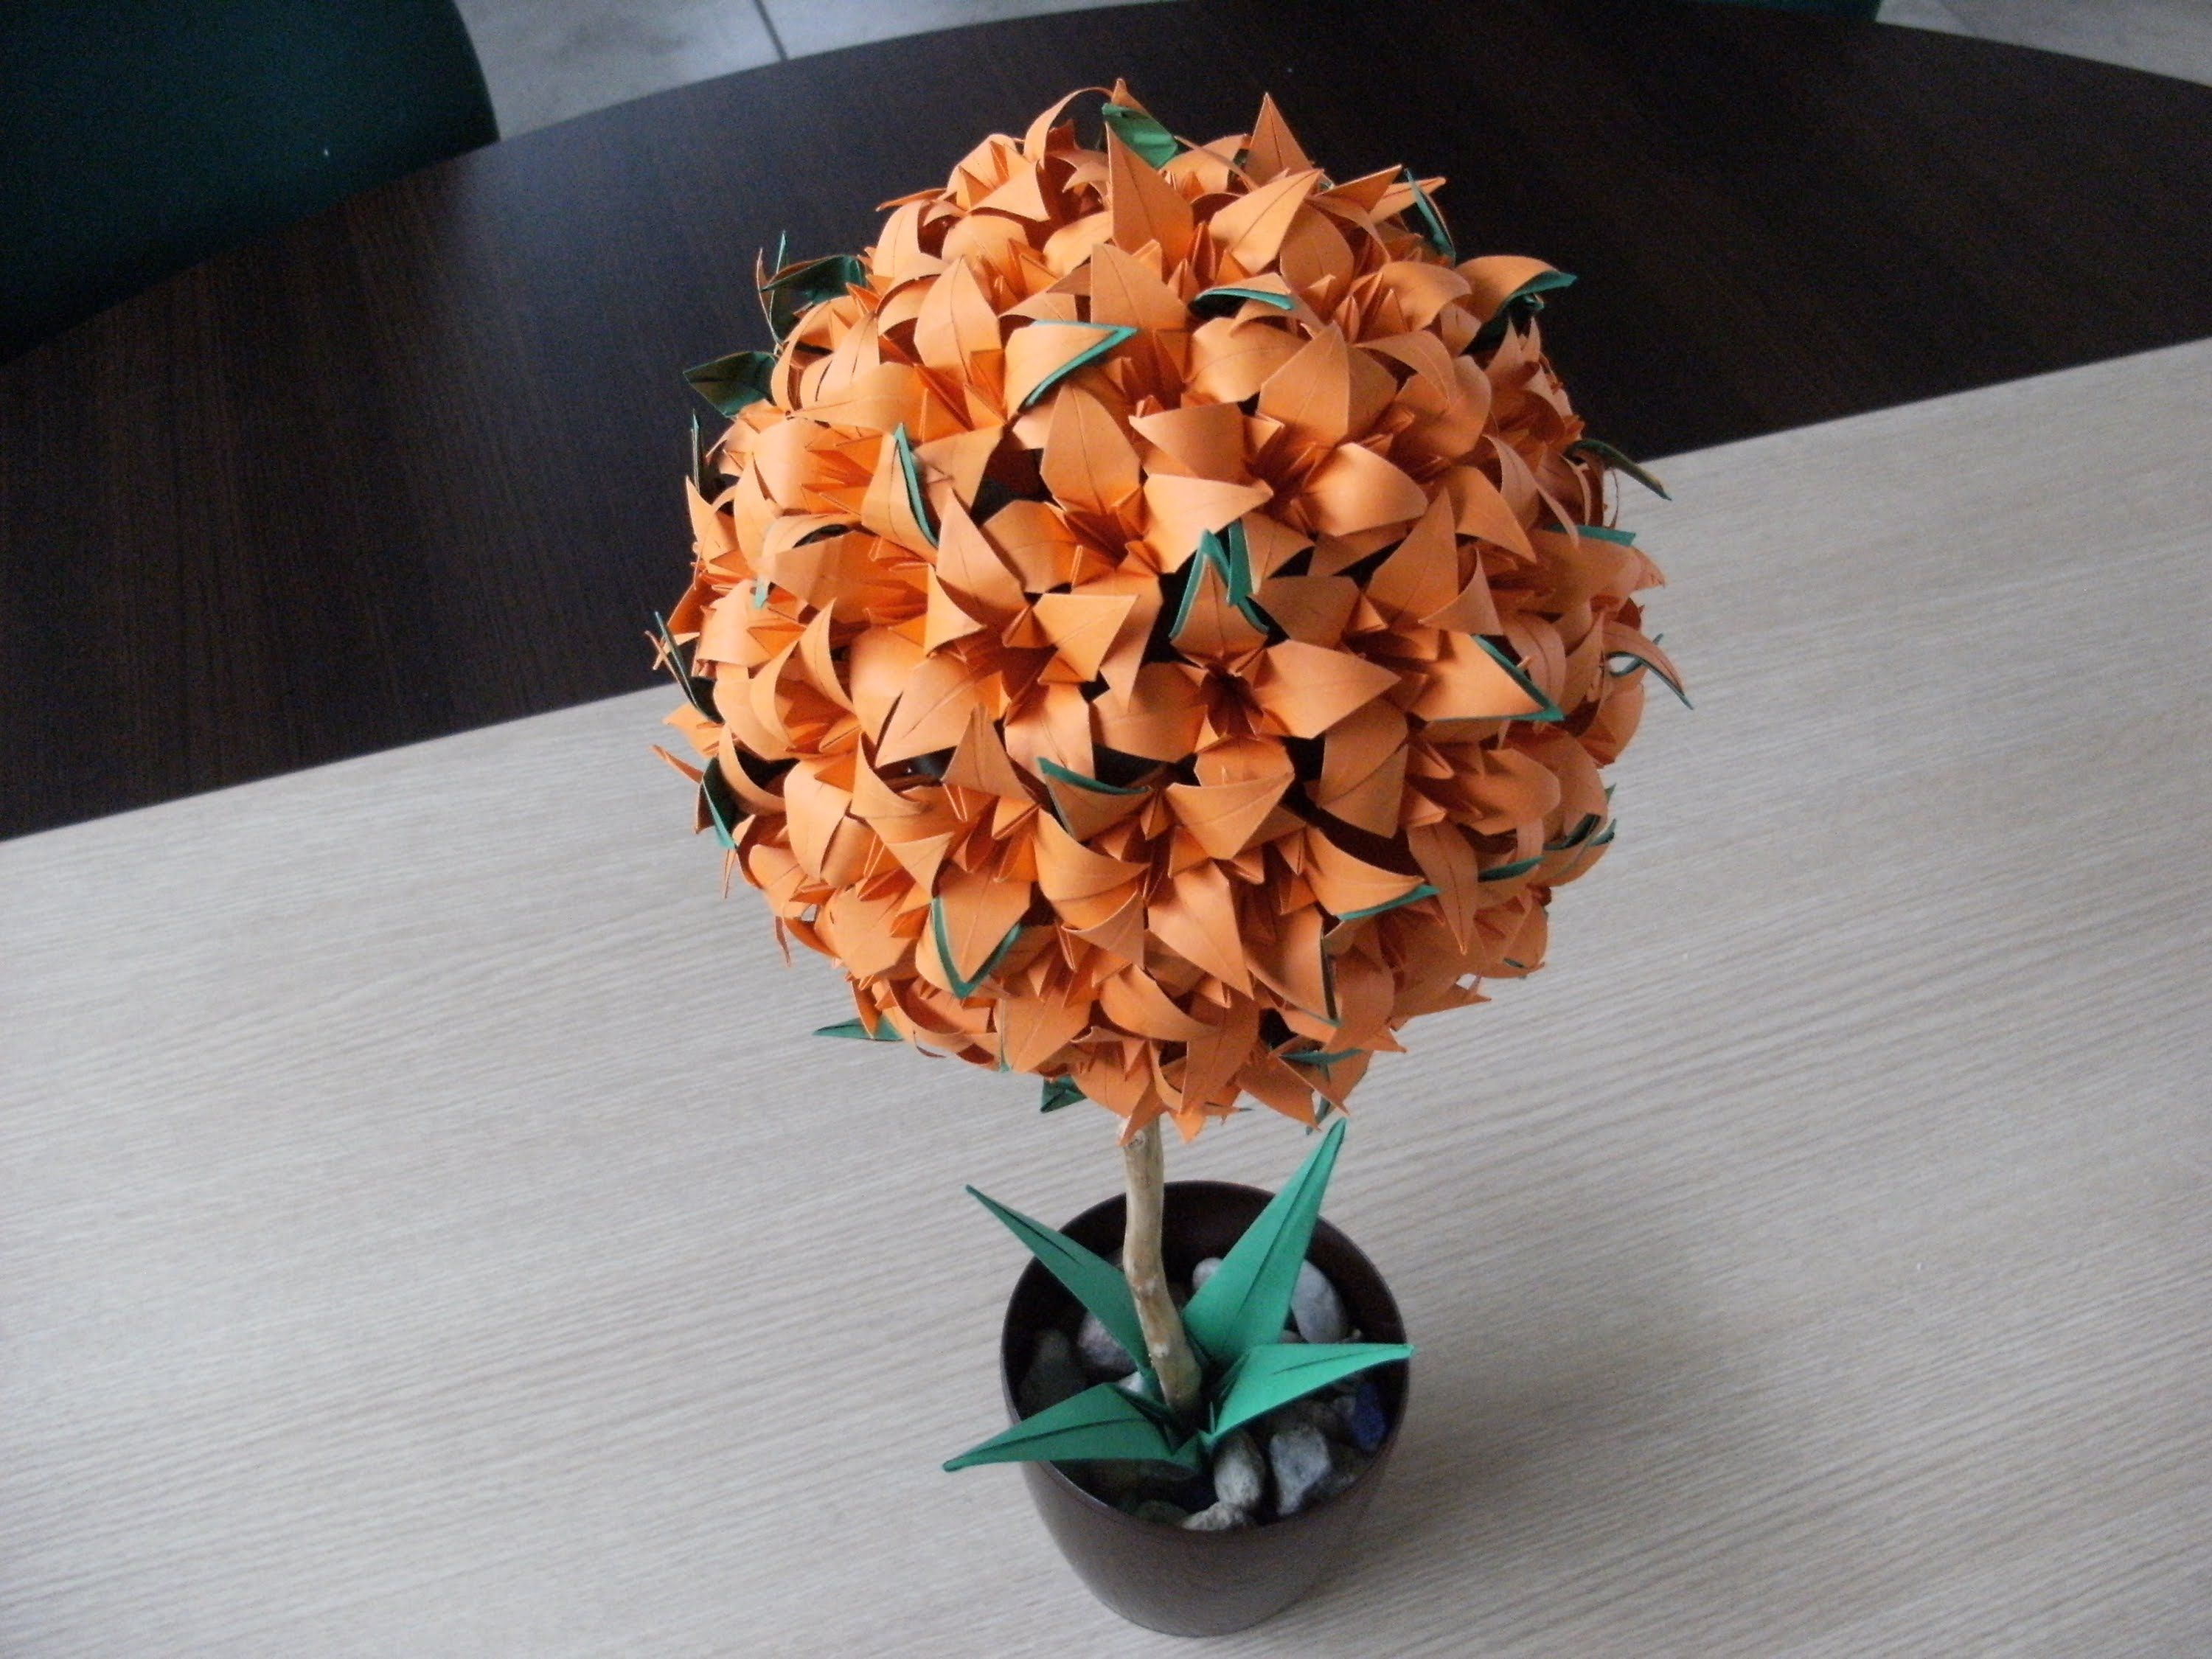 3d Origami Flower Ball Lily Iris How To Make Crafts